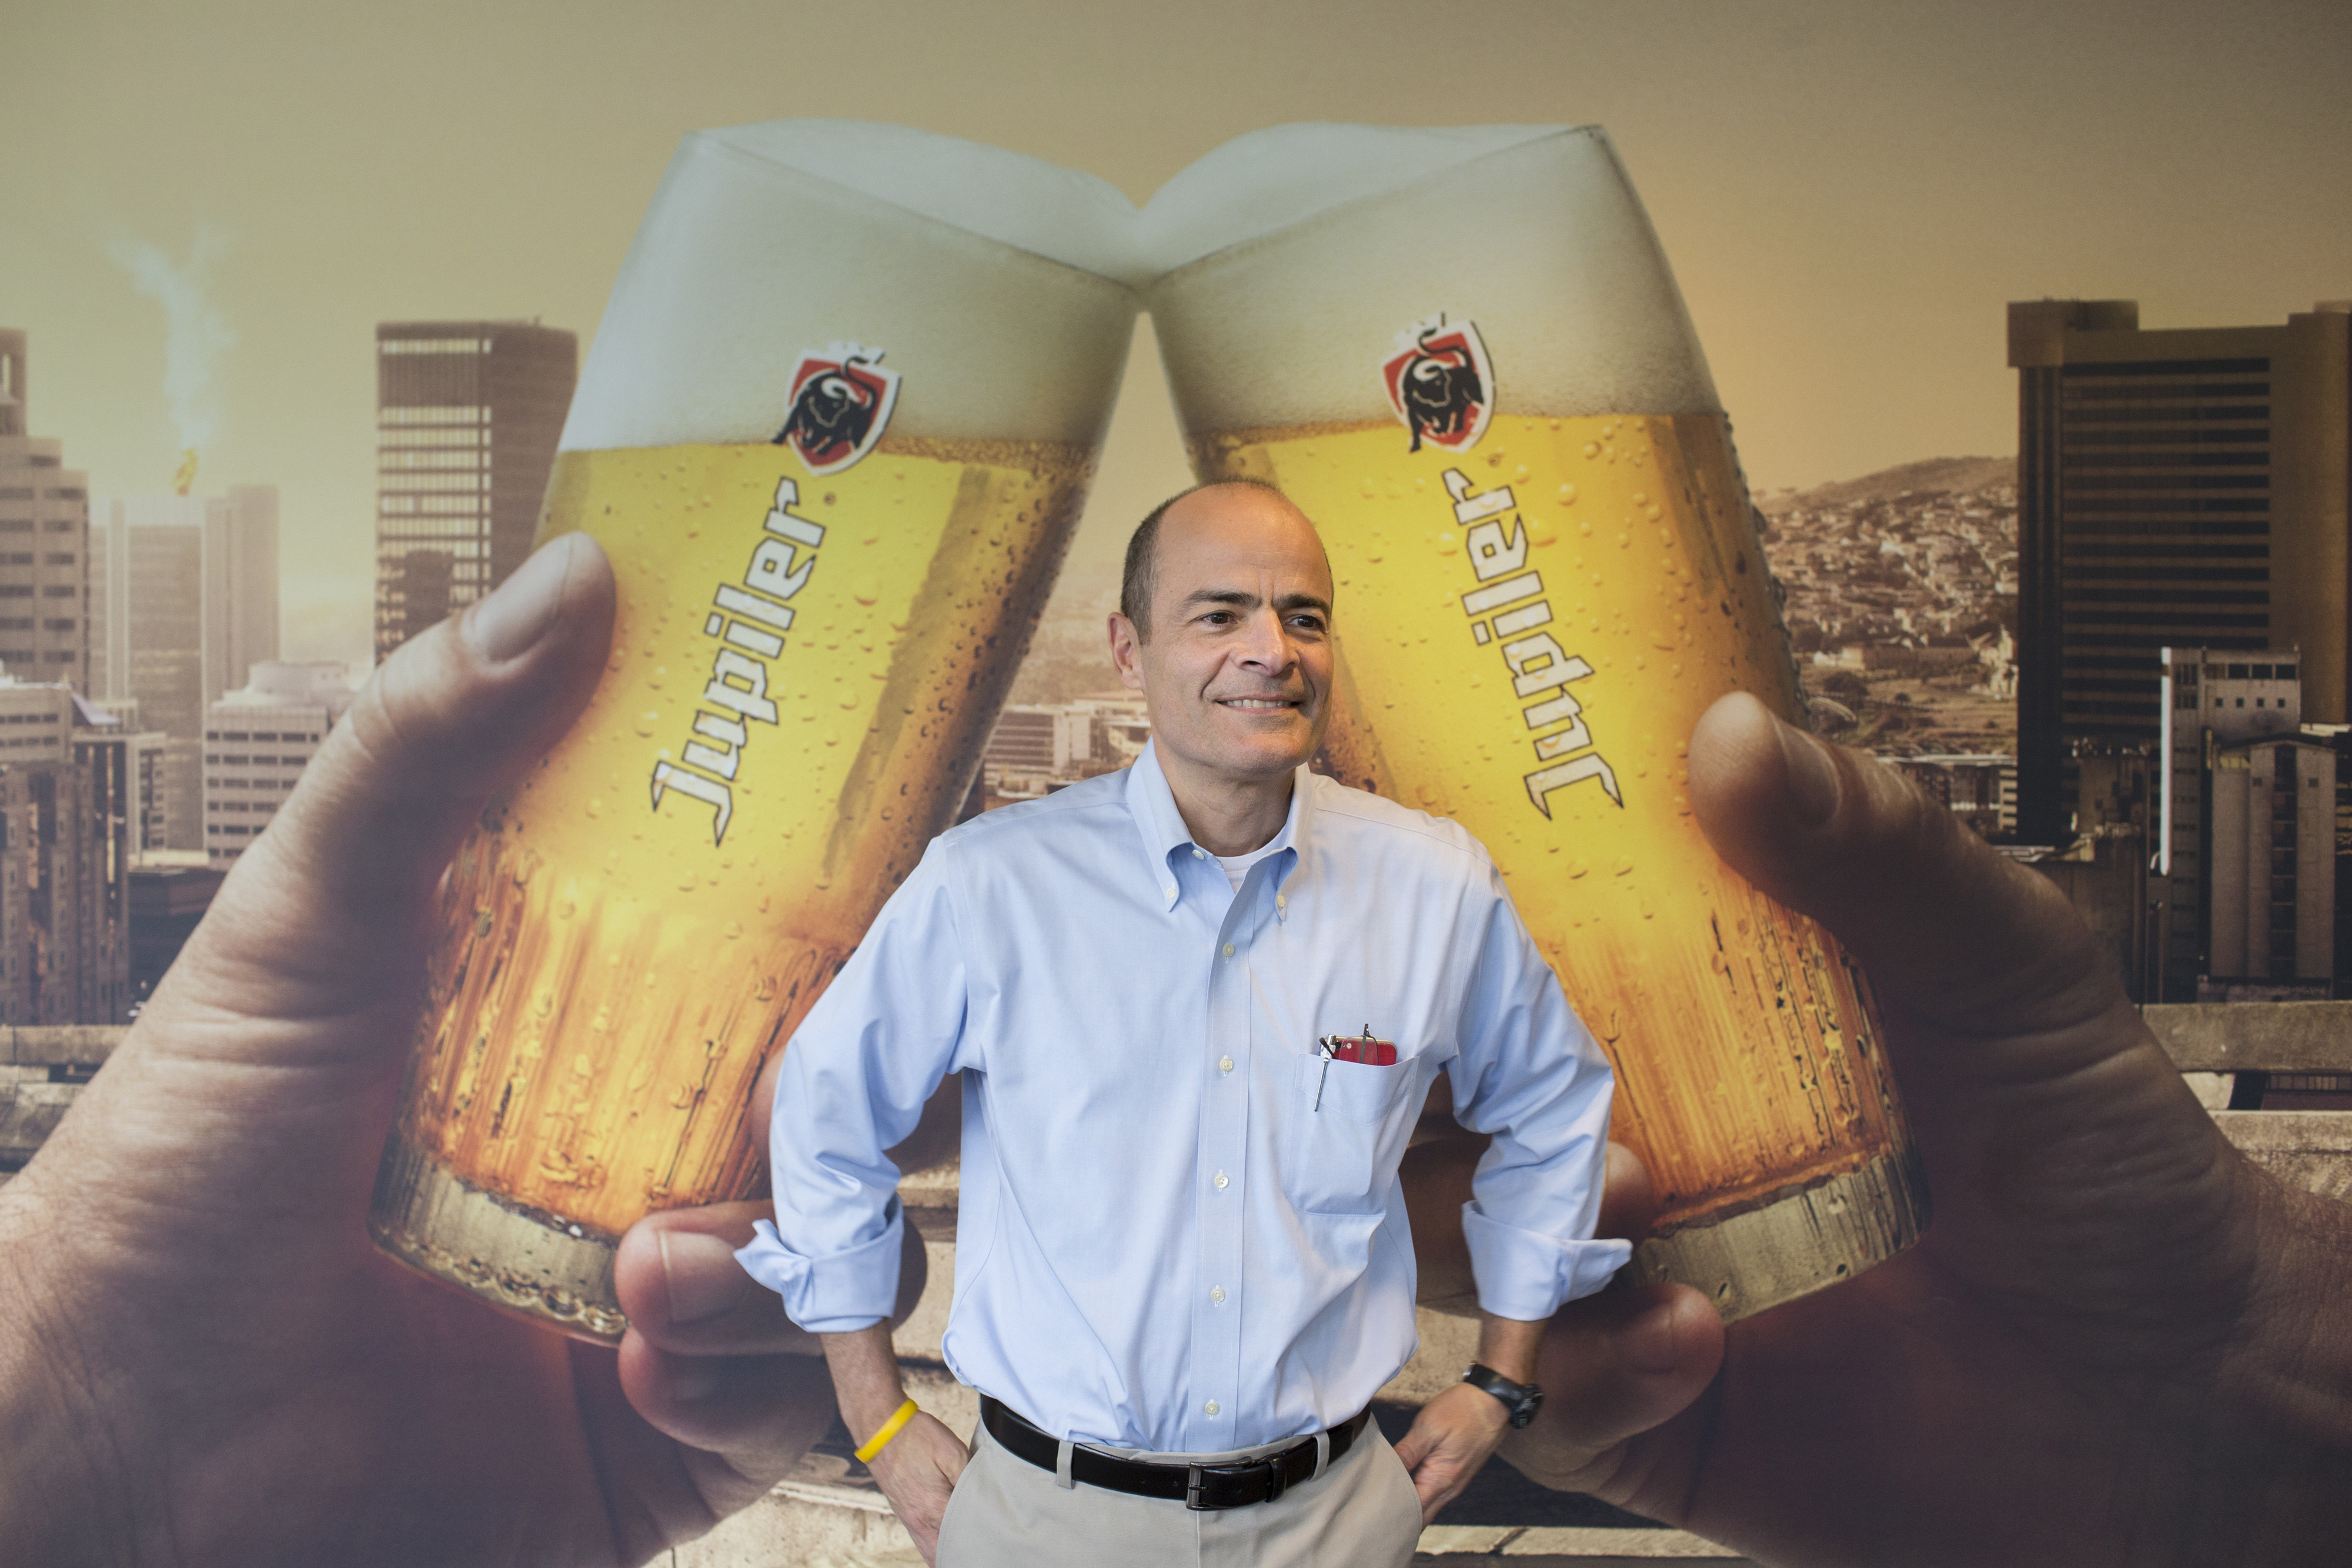 Anheuser-Busch InBev NV Chief Executive Officer Carlos Brito Attends Full Year Results News Conference As Mainstream Beer Demand Dries Up